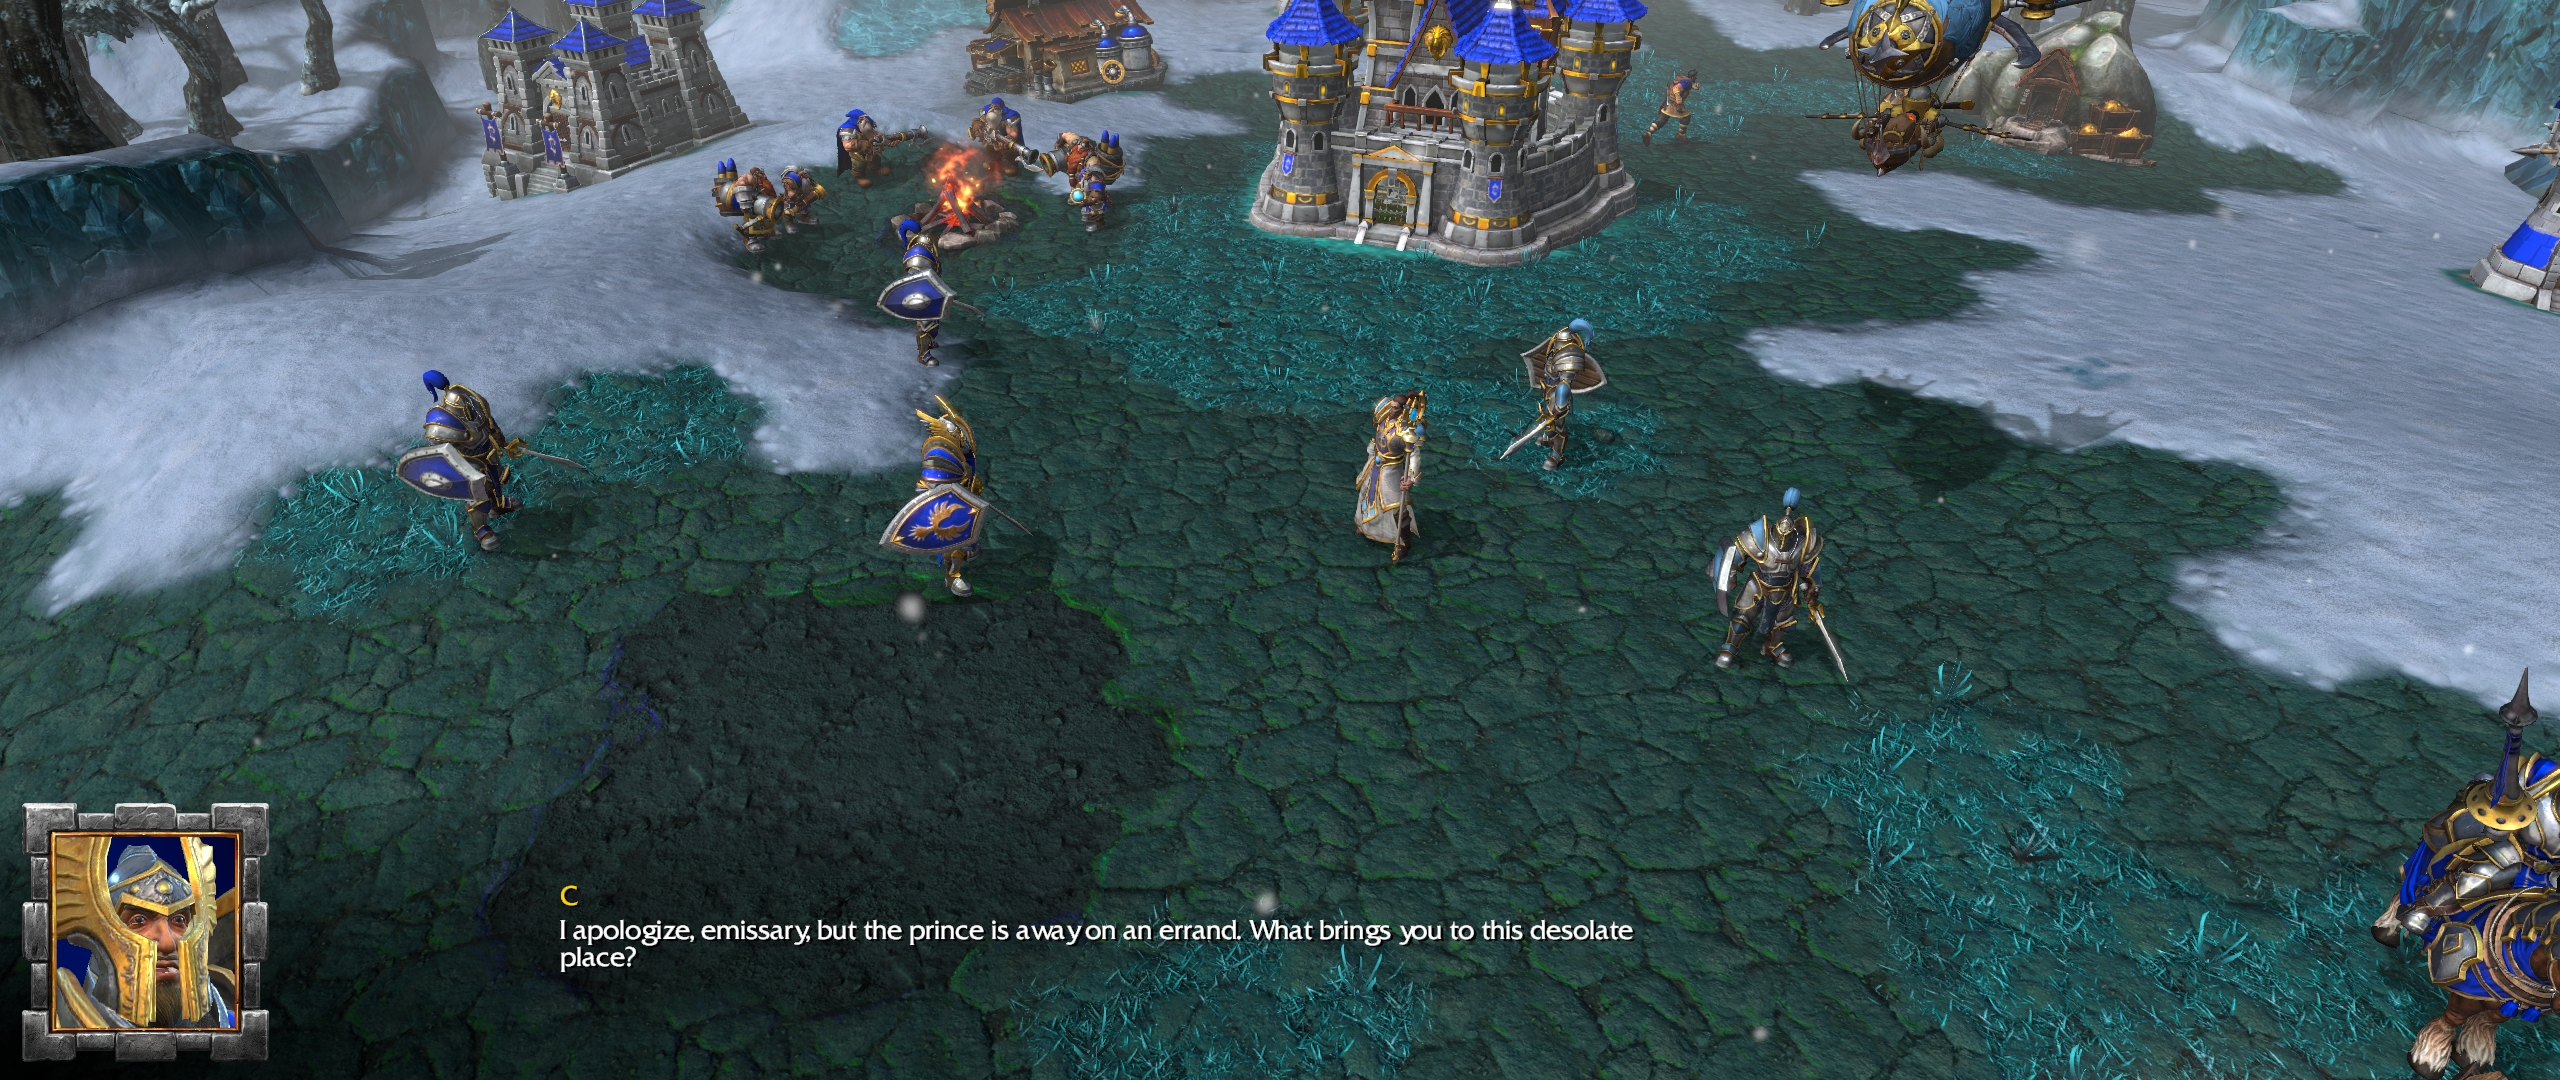 Warcraft Iii Reforged Review Still Good Could Be Amazing